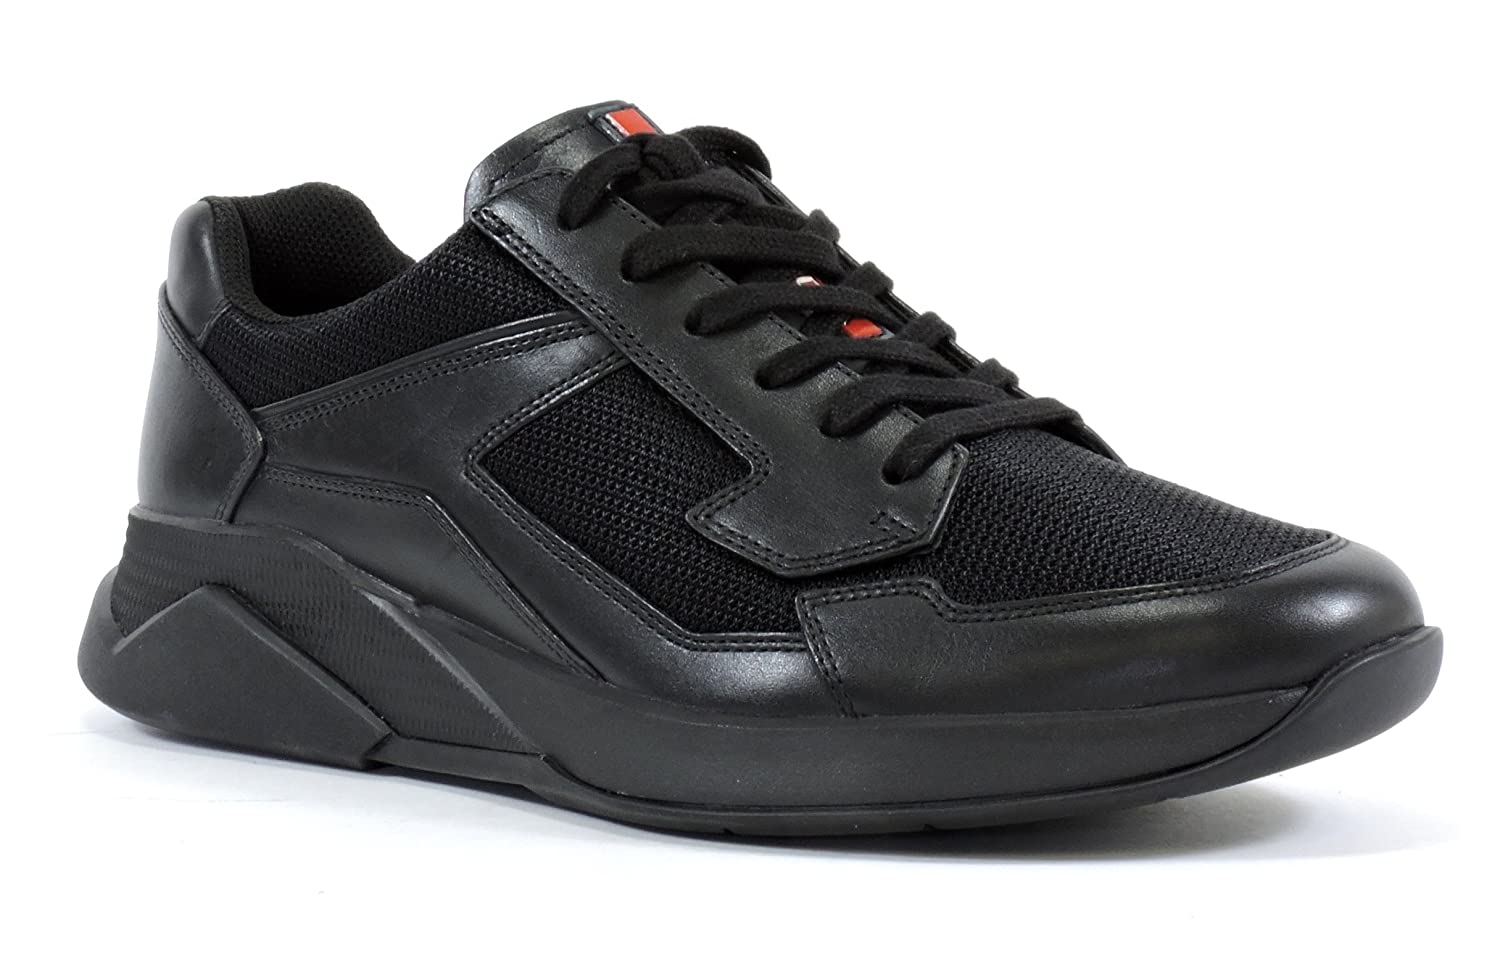 dec2f8e98afa8 Amazon.com | Prada Men's 4E2816 Leather Sneaker | Fashion Sneakers